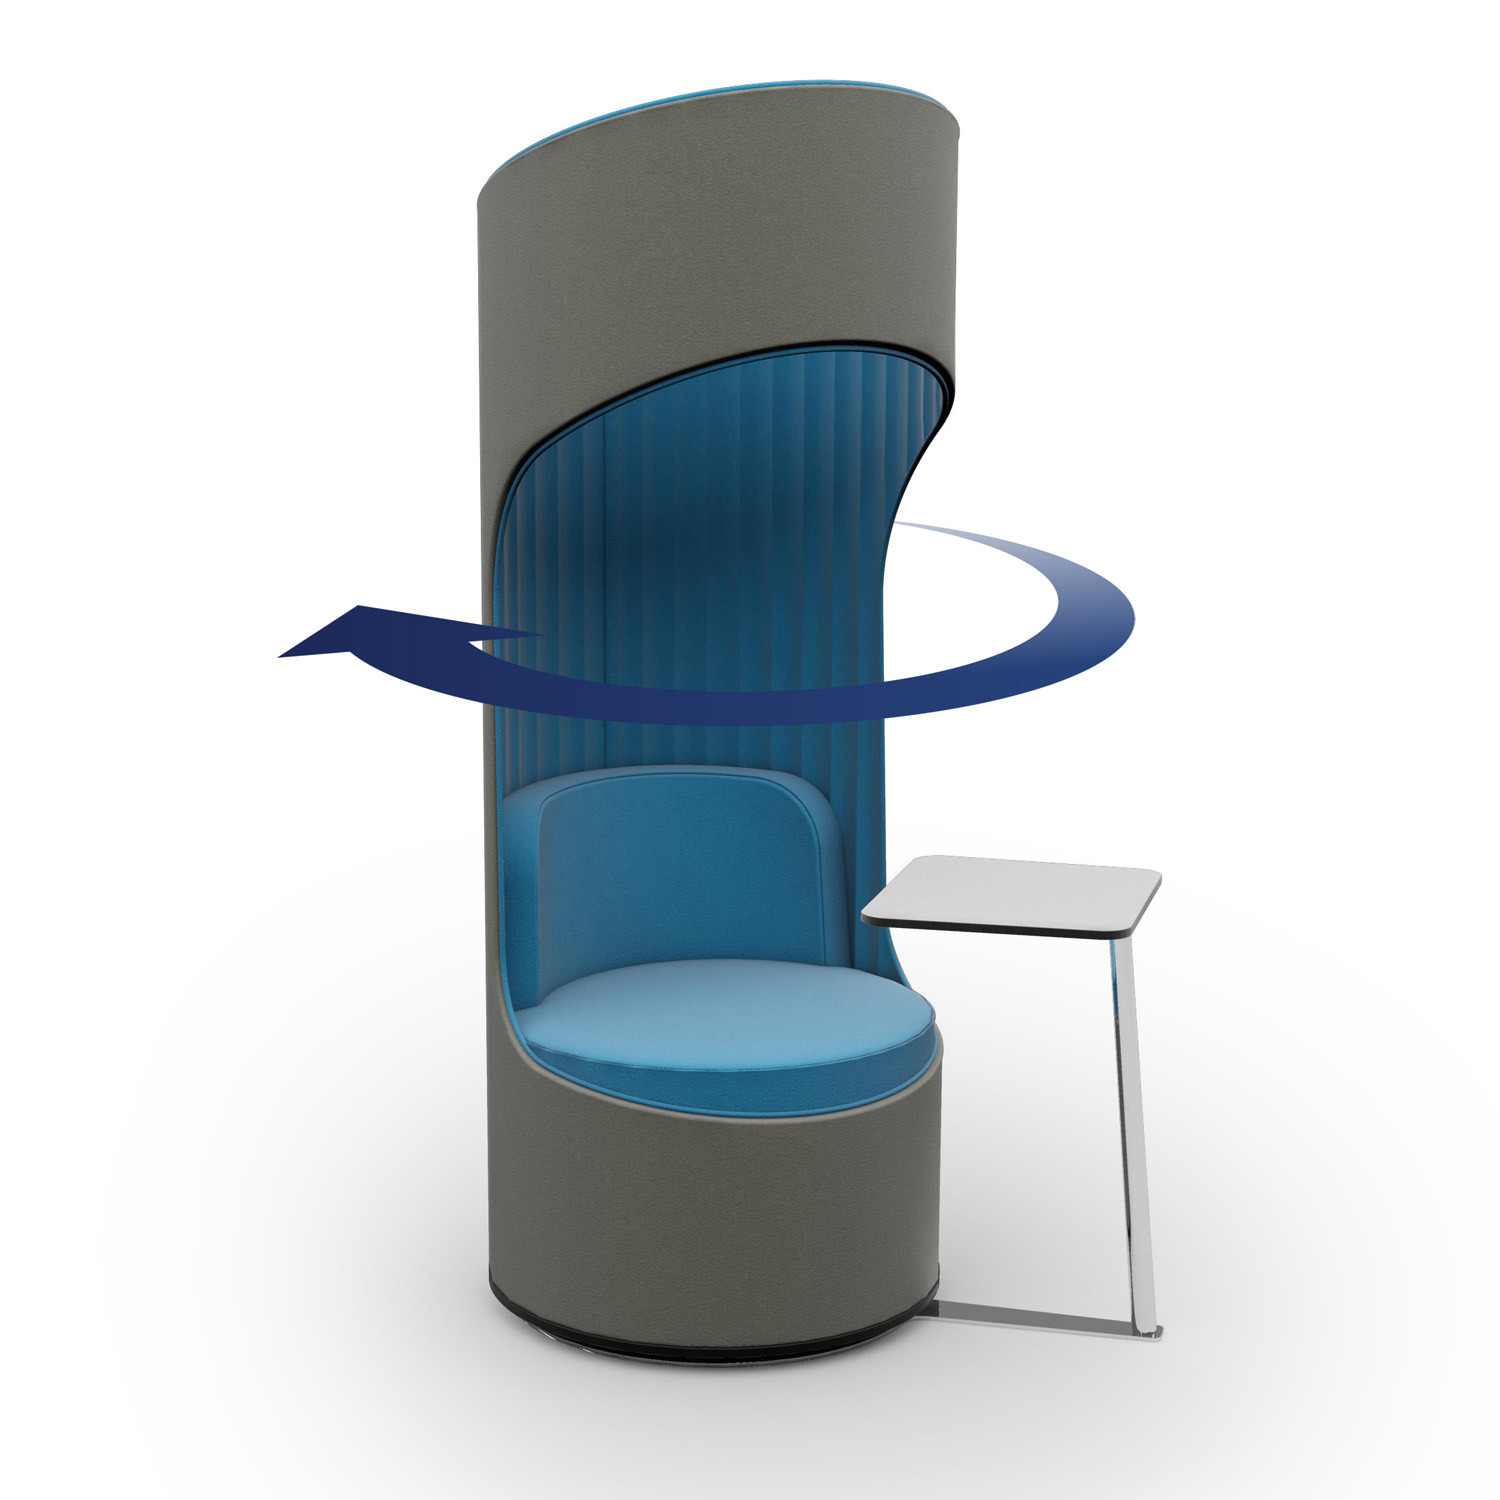 Cega Chair is available as a 360 degree swivel